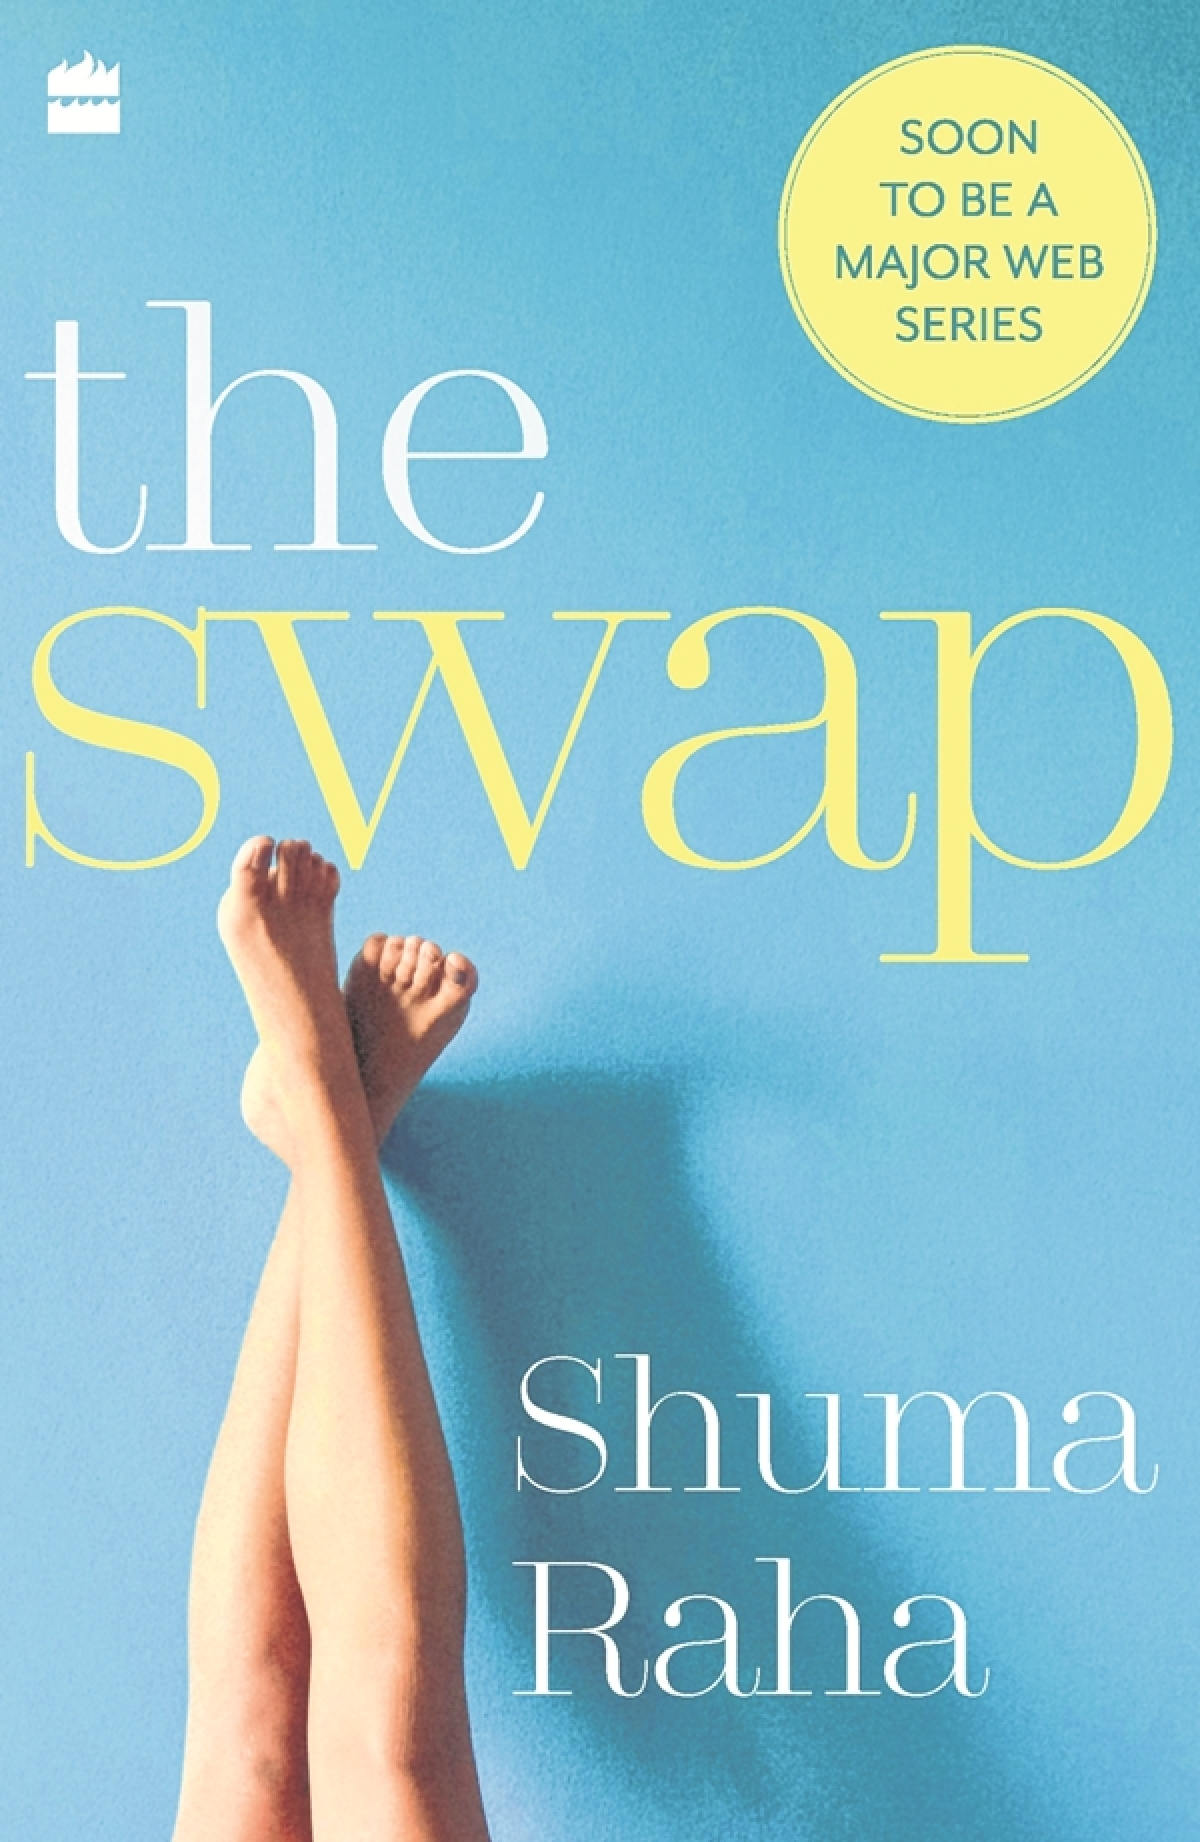 'A great book is like watching a movie': Shuma Raha's The Swap all set go live as web series